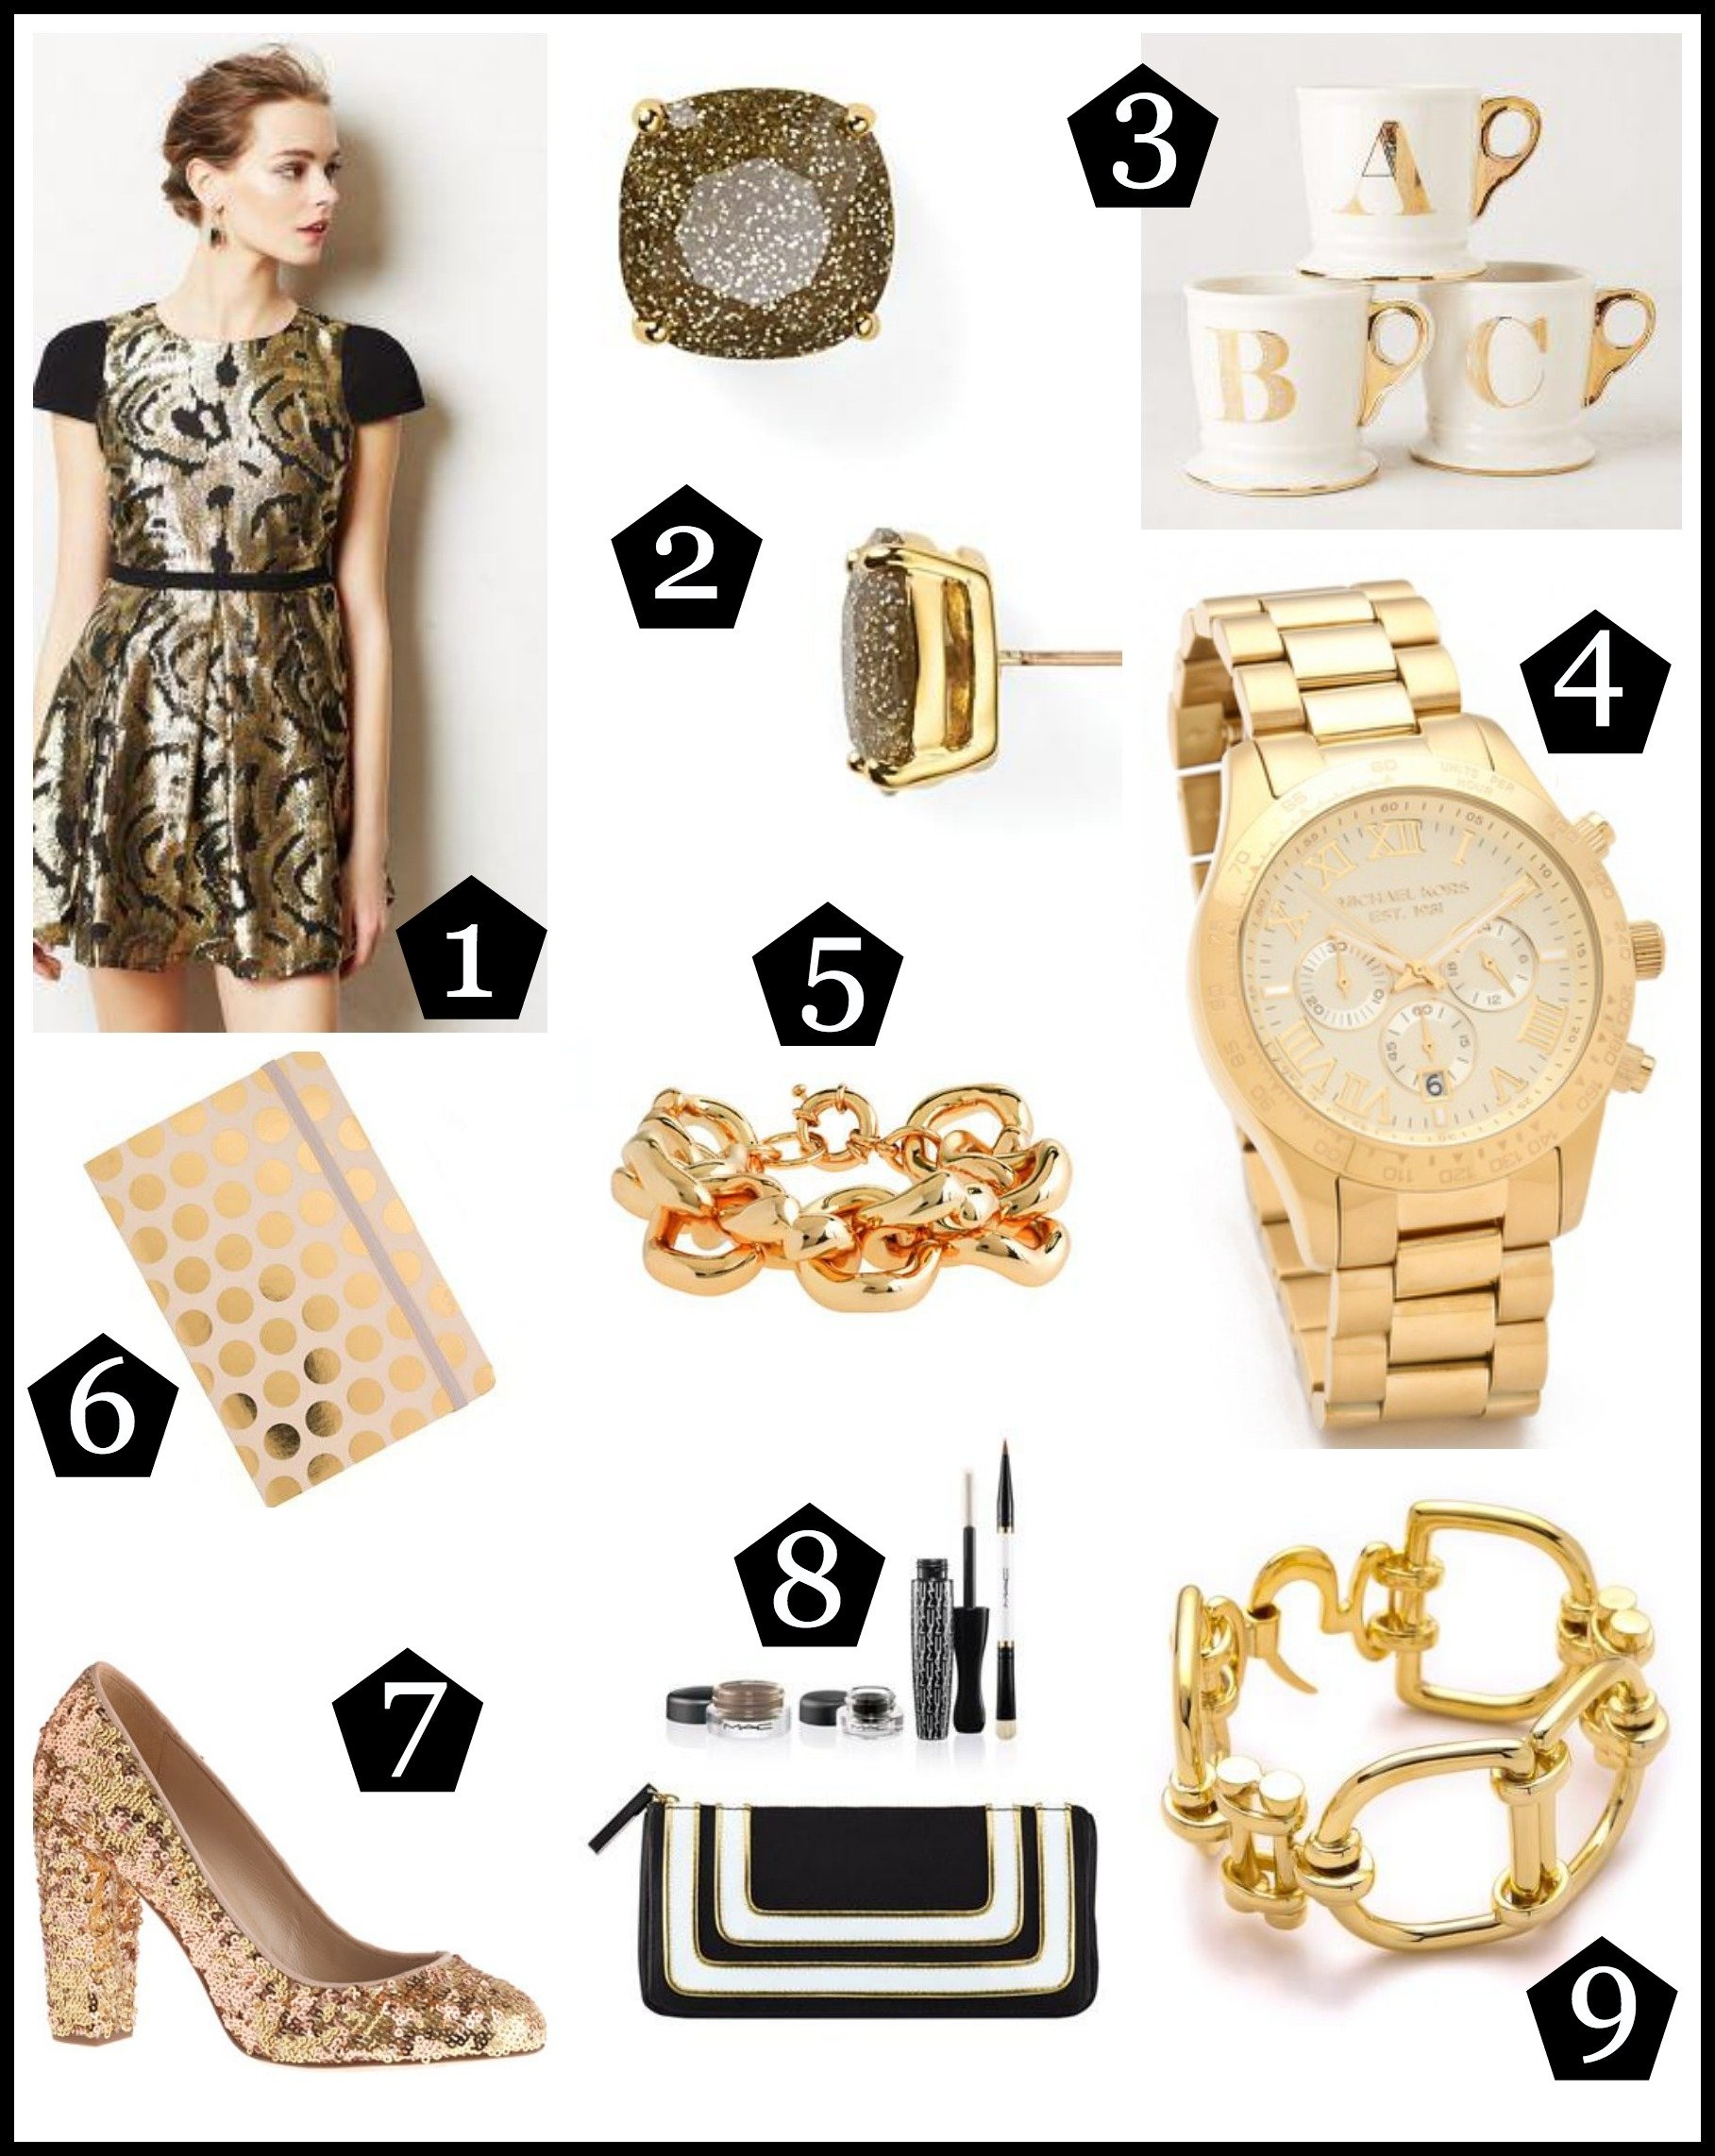 10 Attractive Best Gift Ideas For Women 2013 the jcr girls holiday gift guide gold edition the jcr girls 1 2020